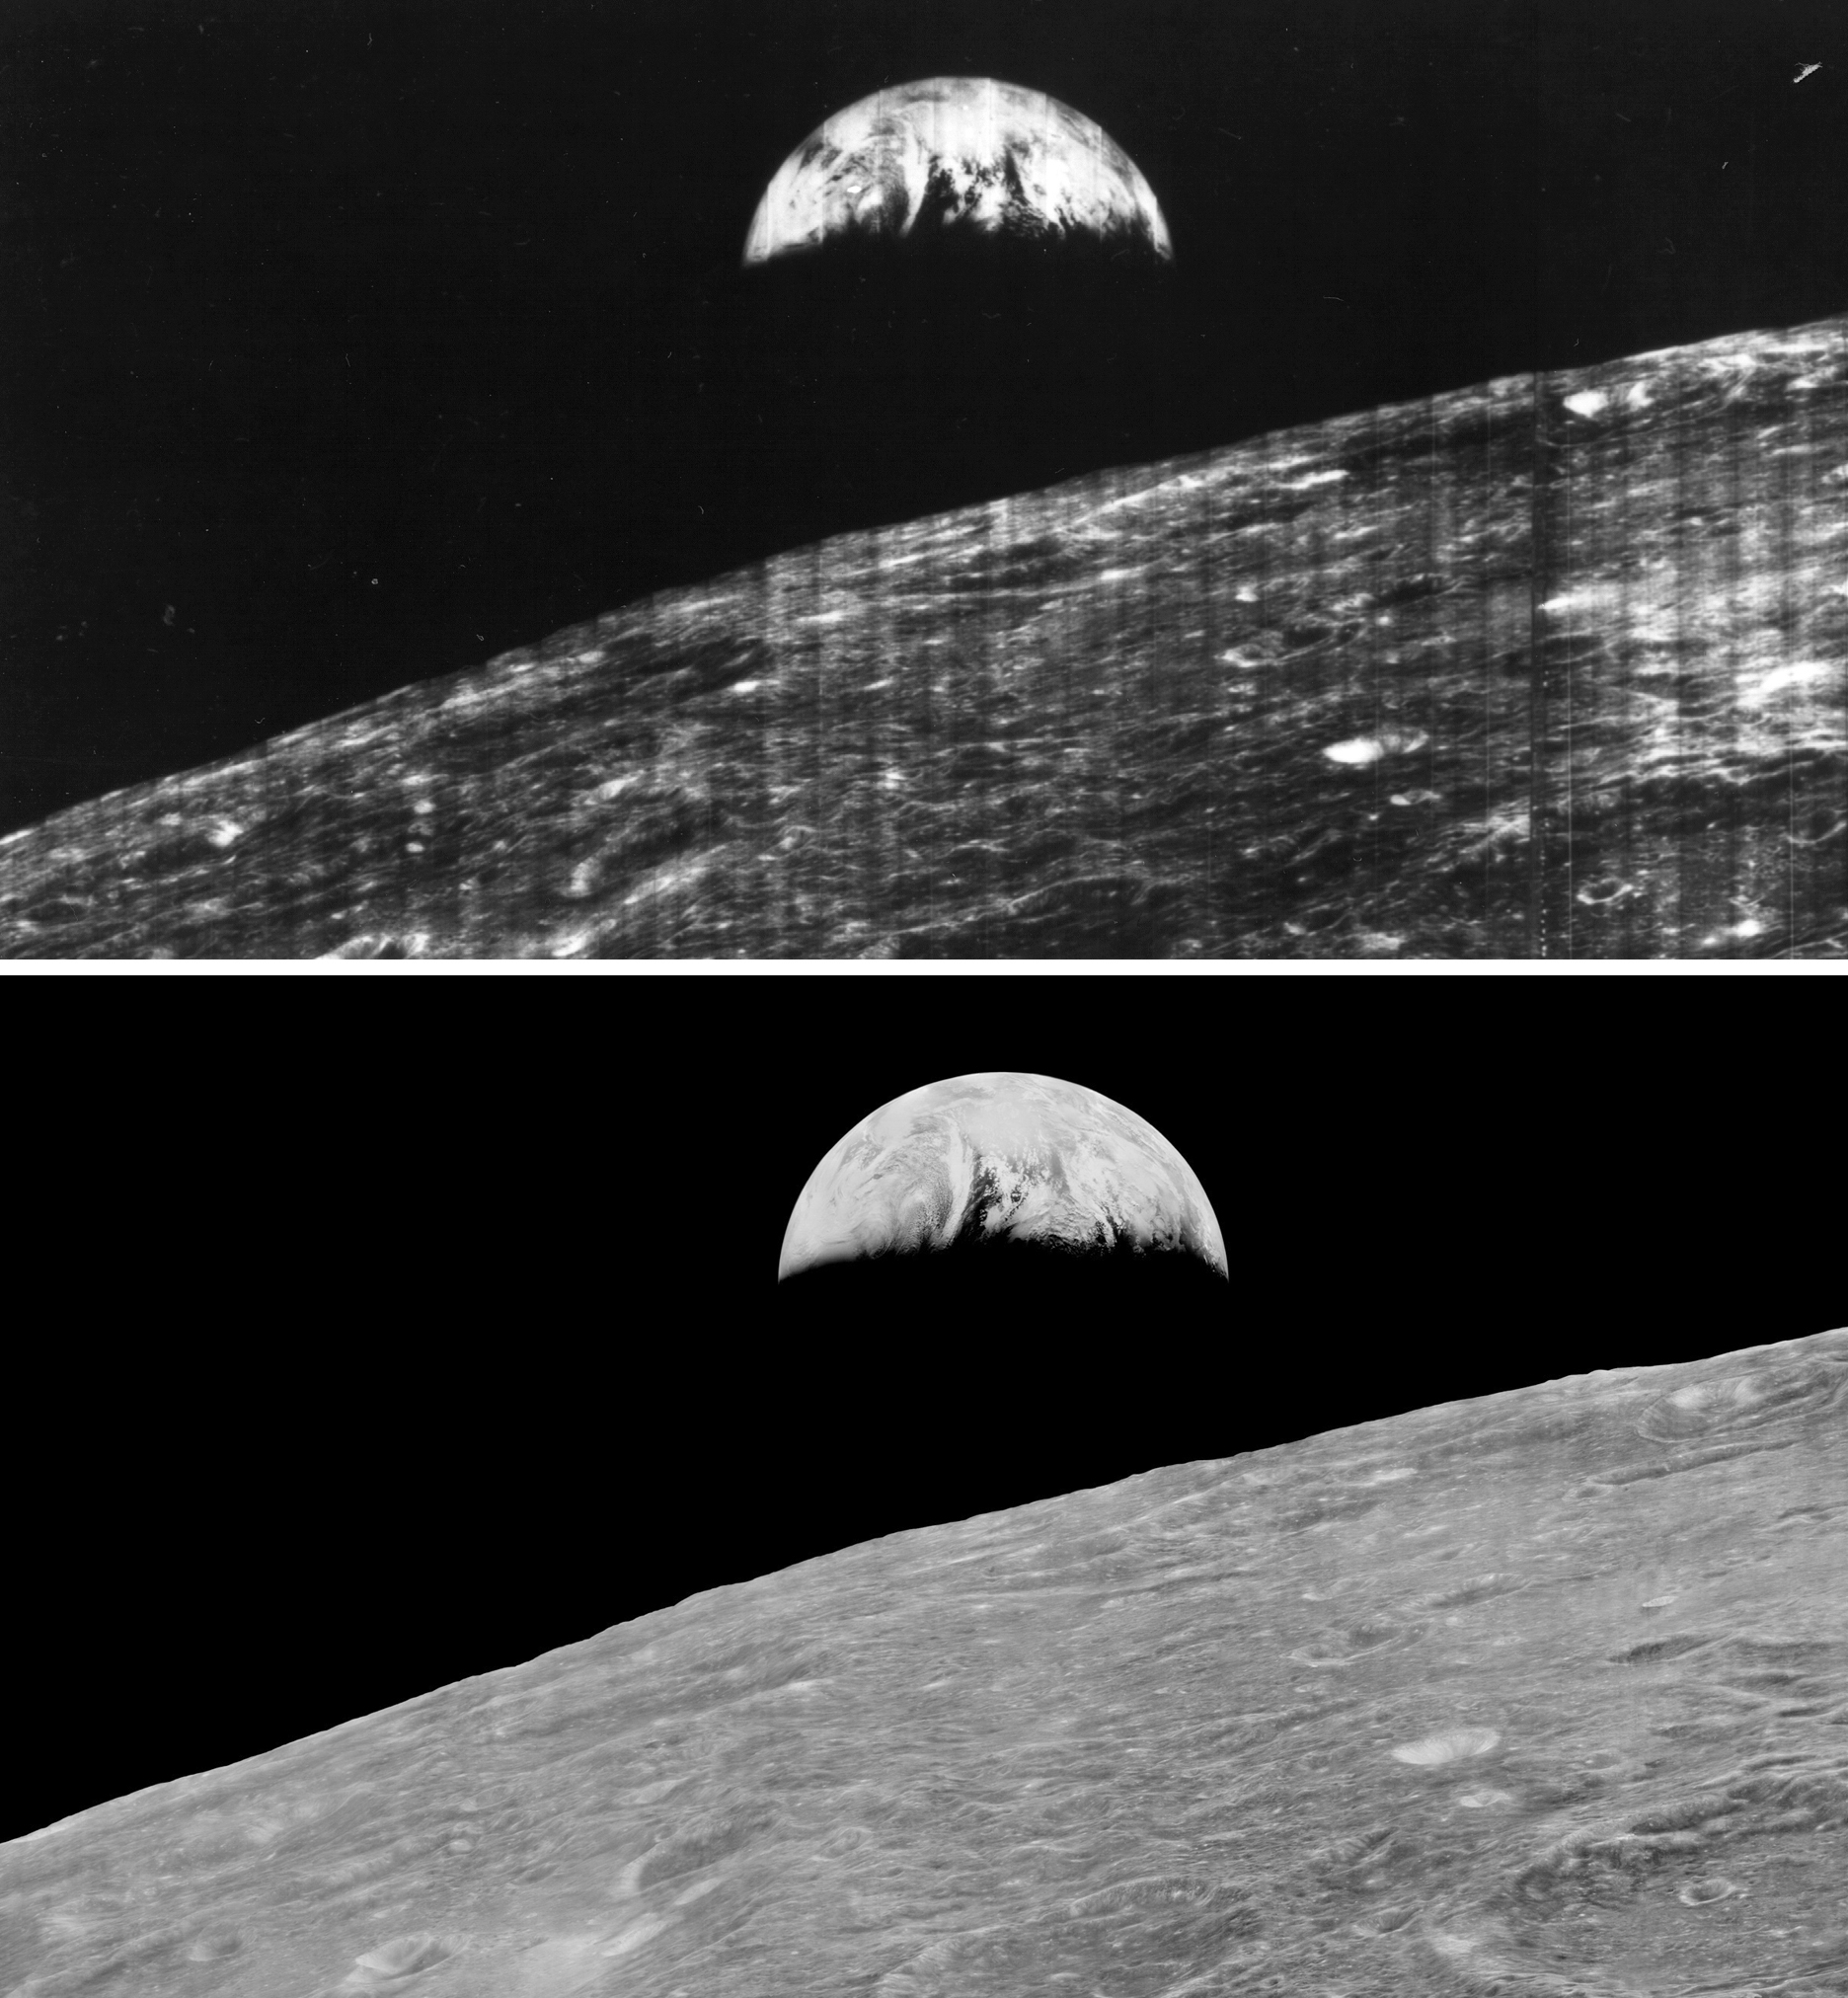 moonviews: earth imagery archives